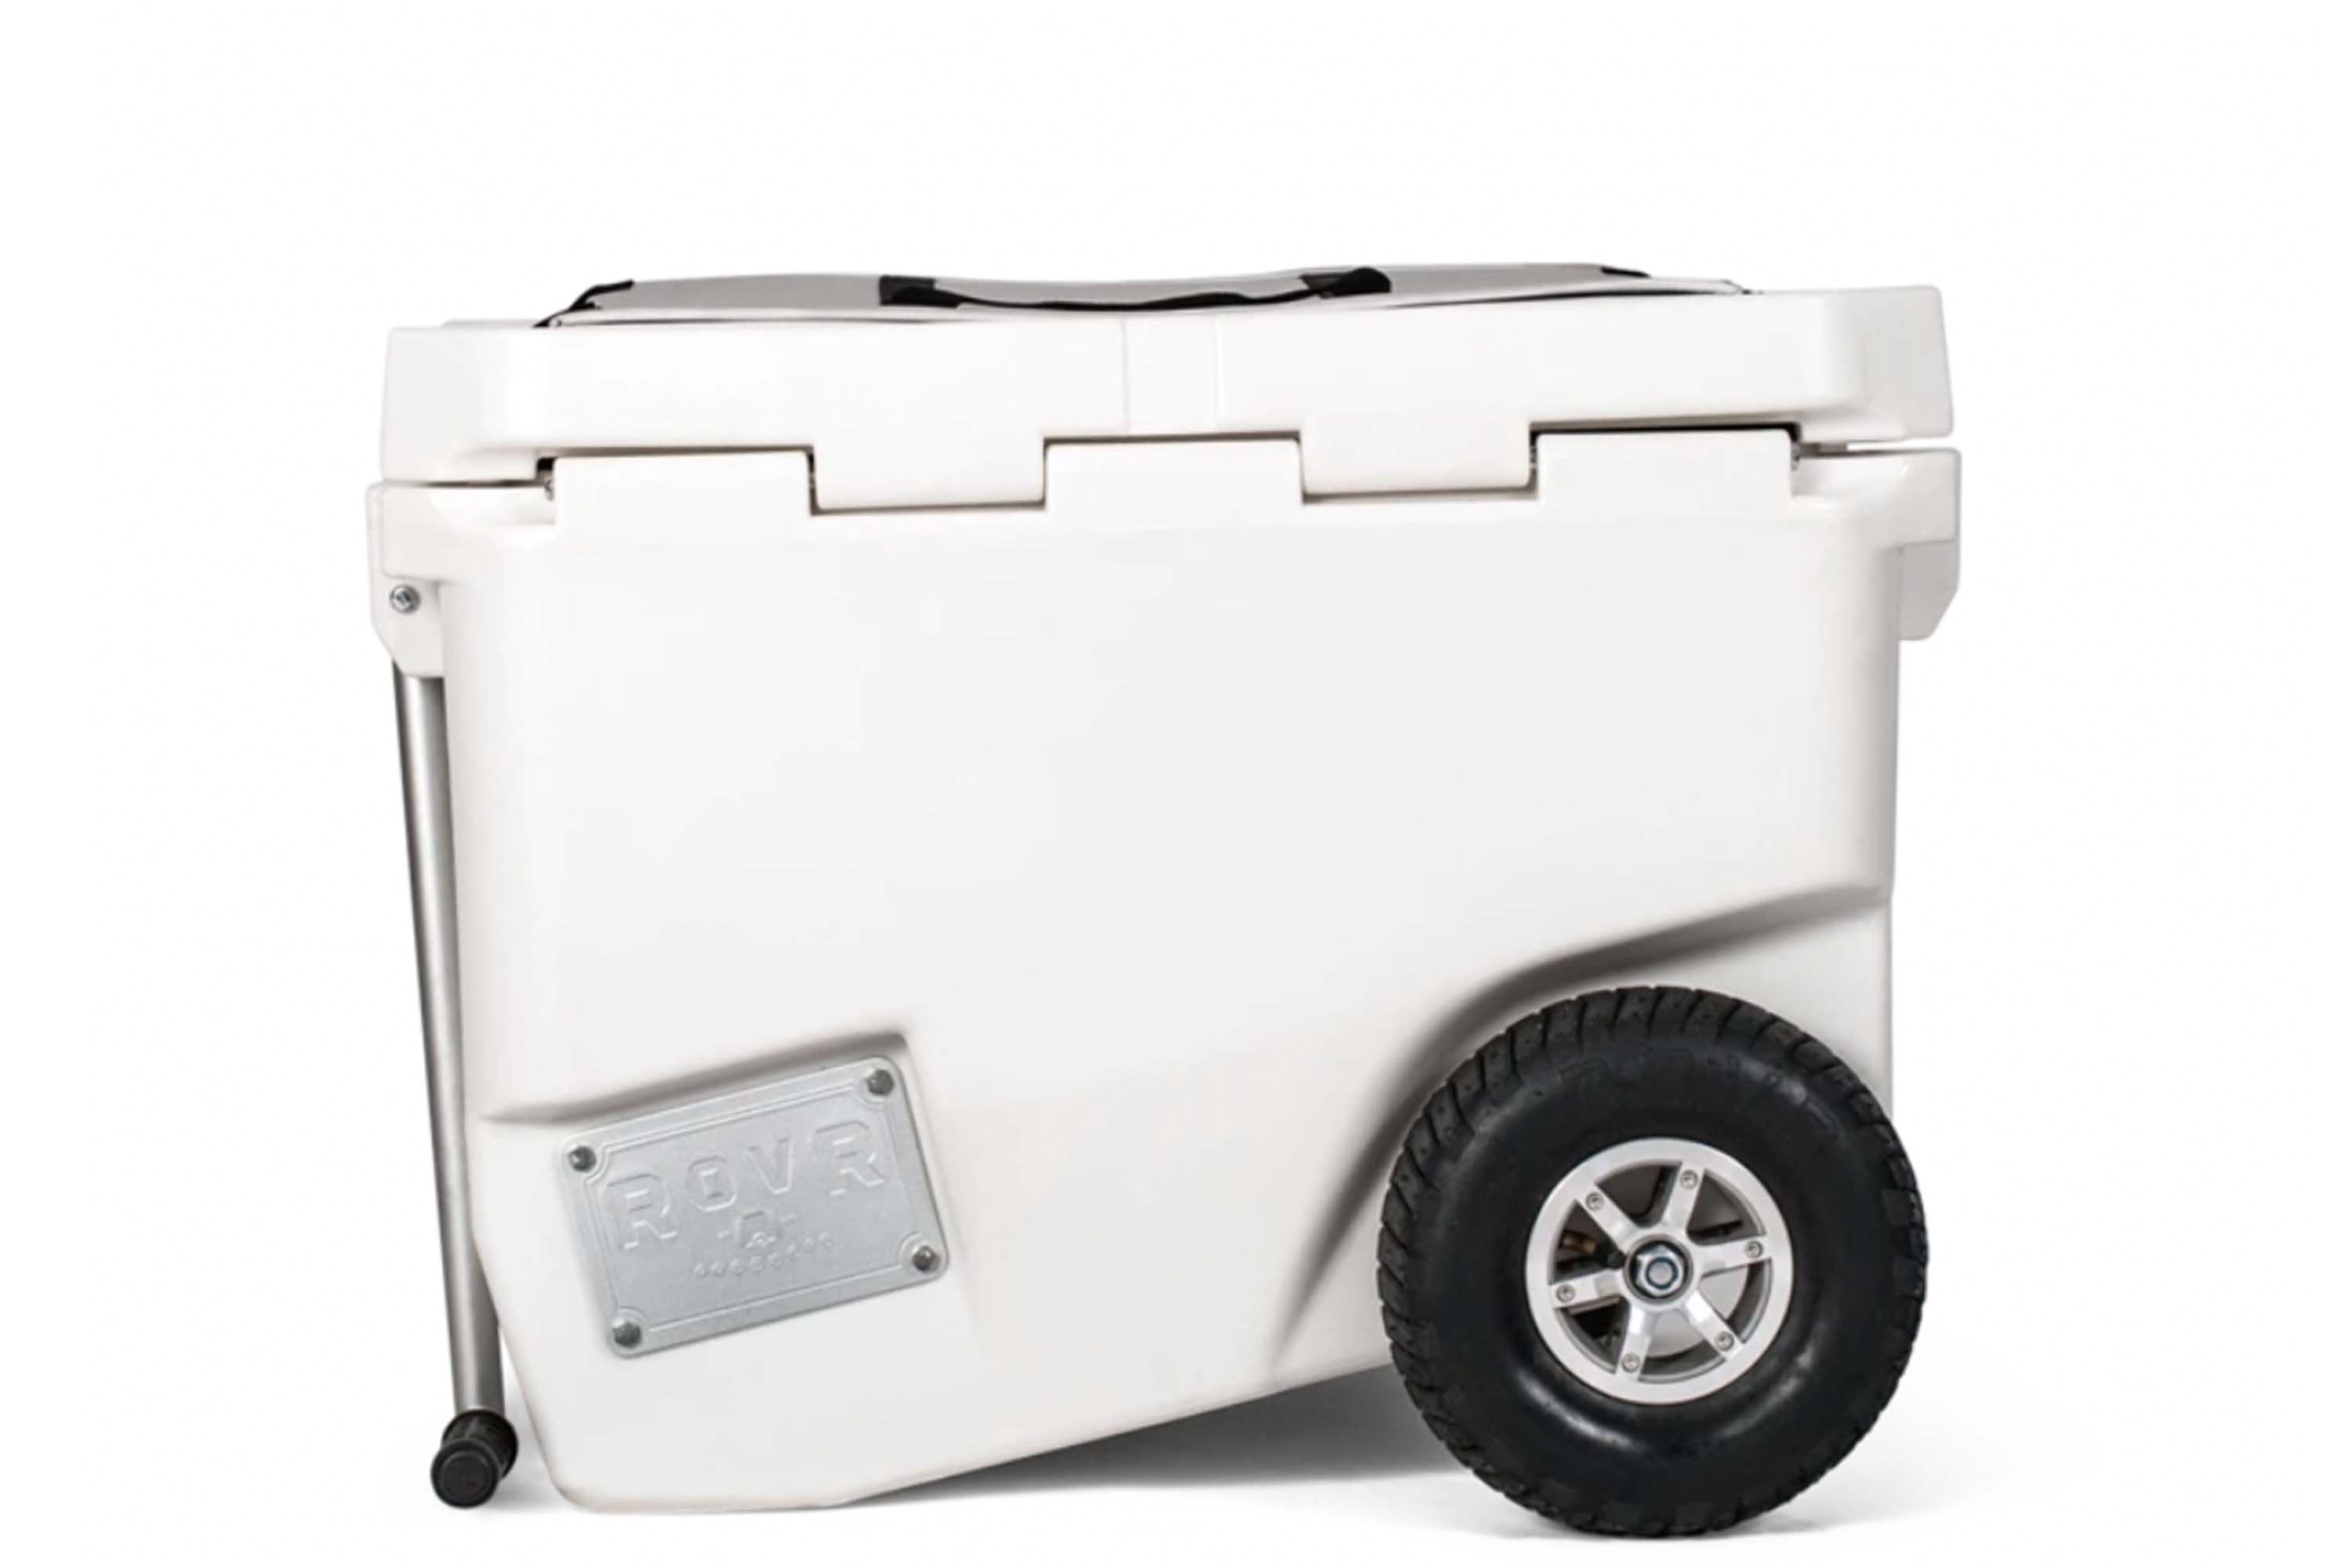 ROVR RollR wheeled cooler with bike hitch attachment and pull handle